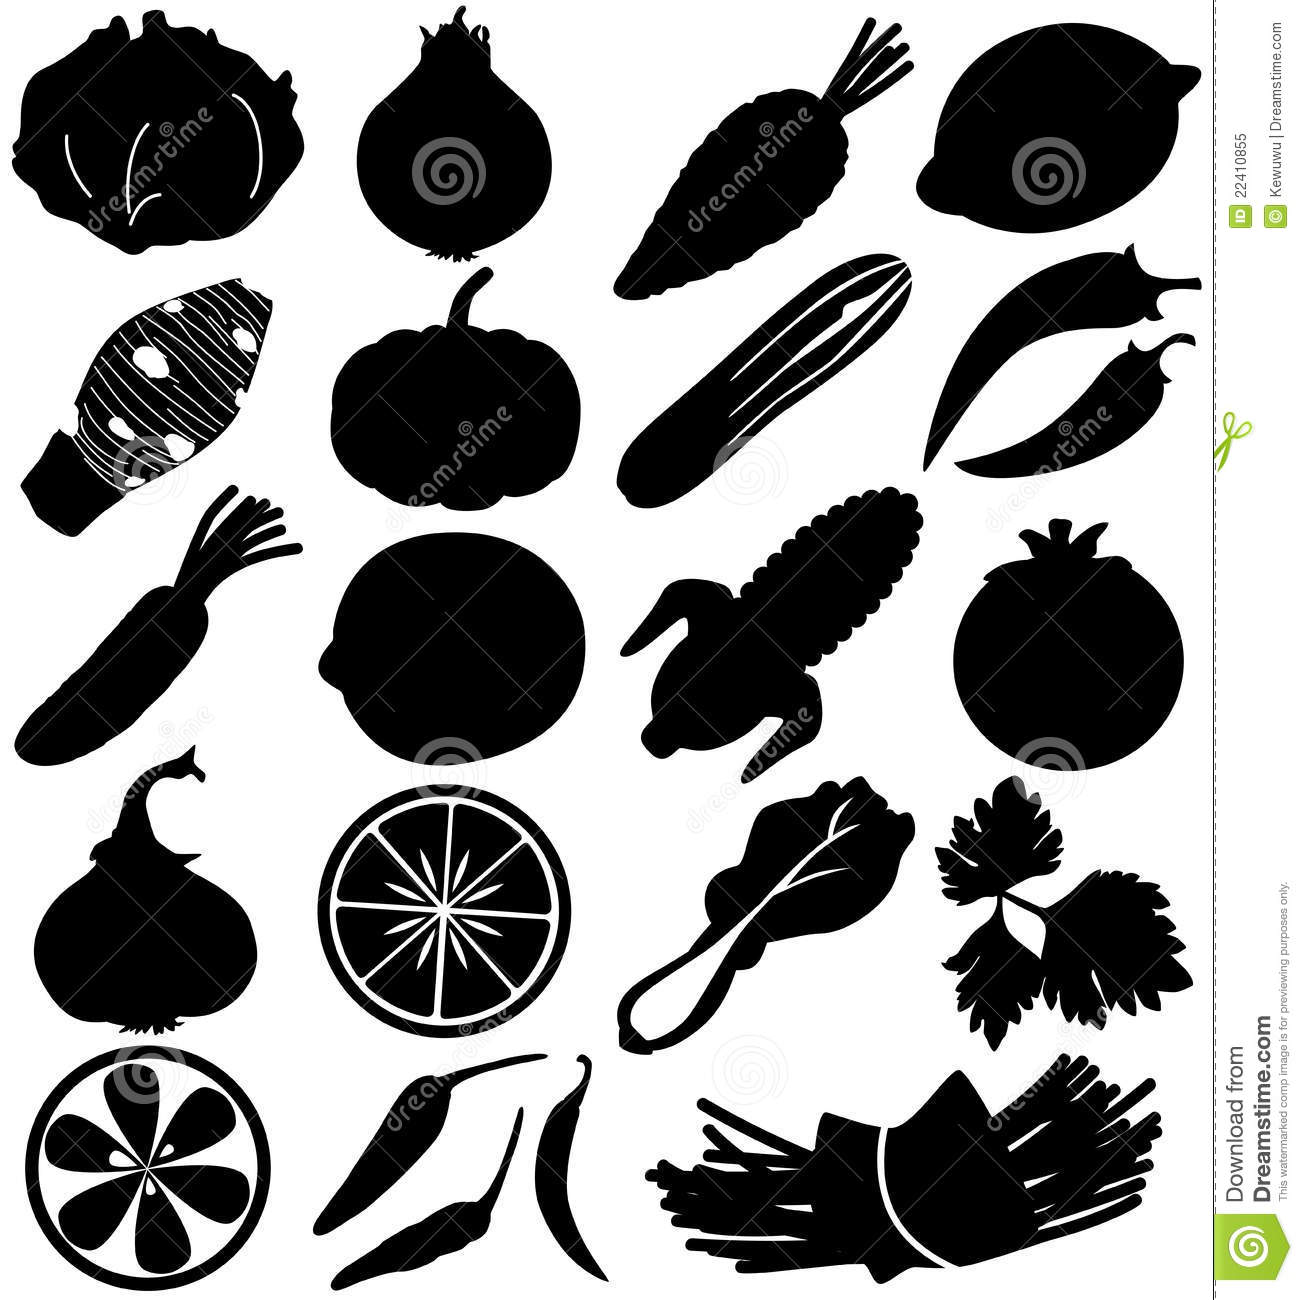 More similar stock images of ` Silhouette Vector of Fruit & vegetable ...